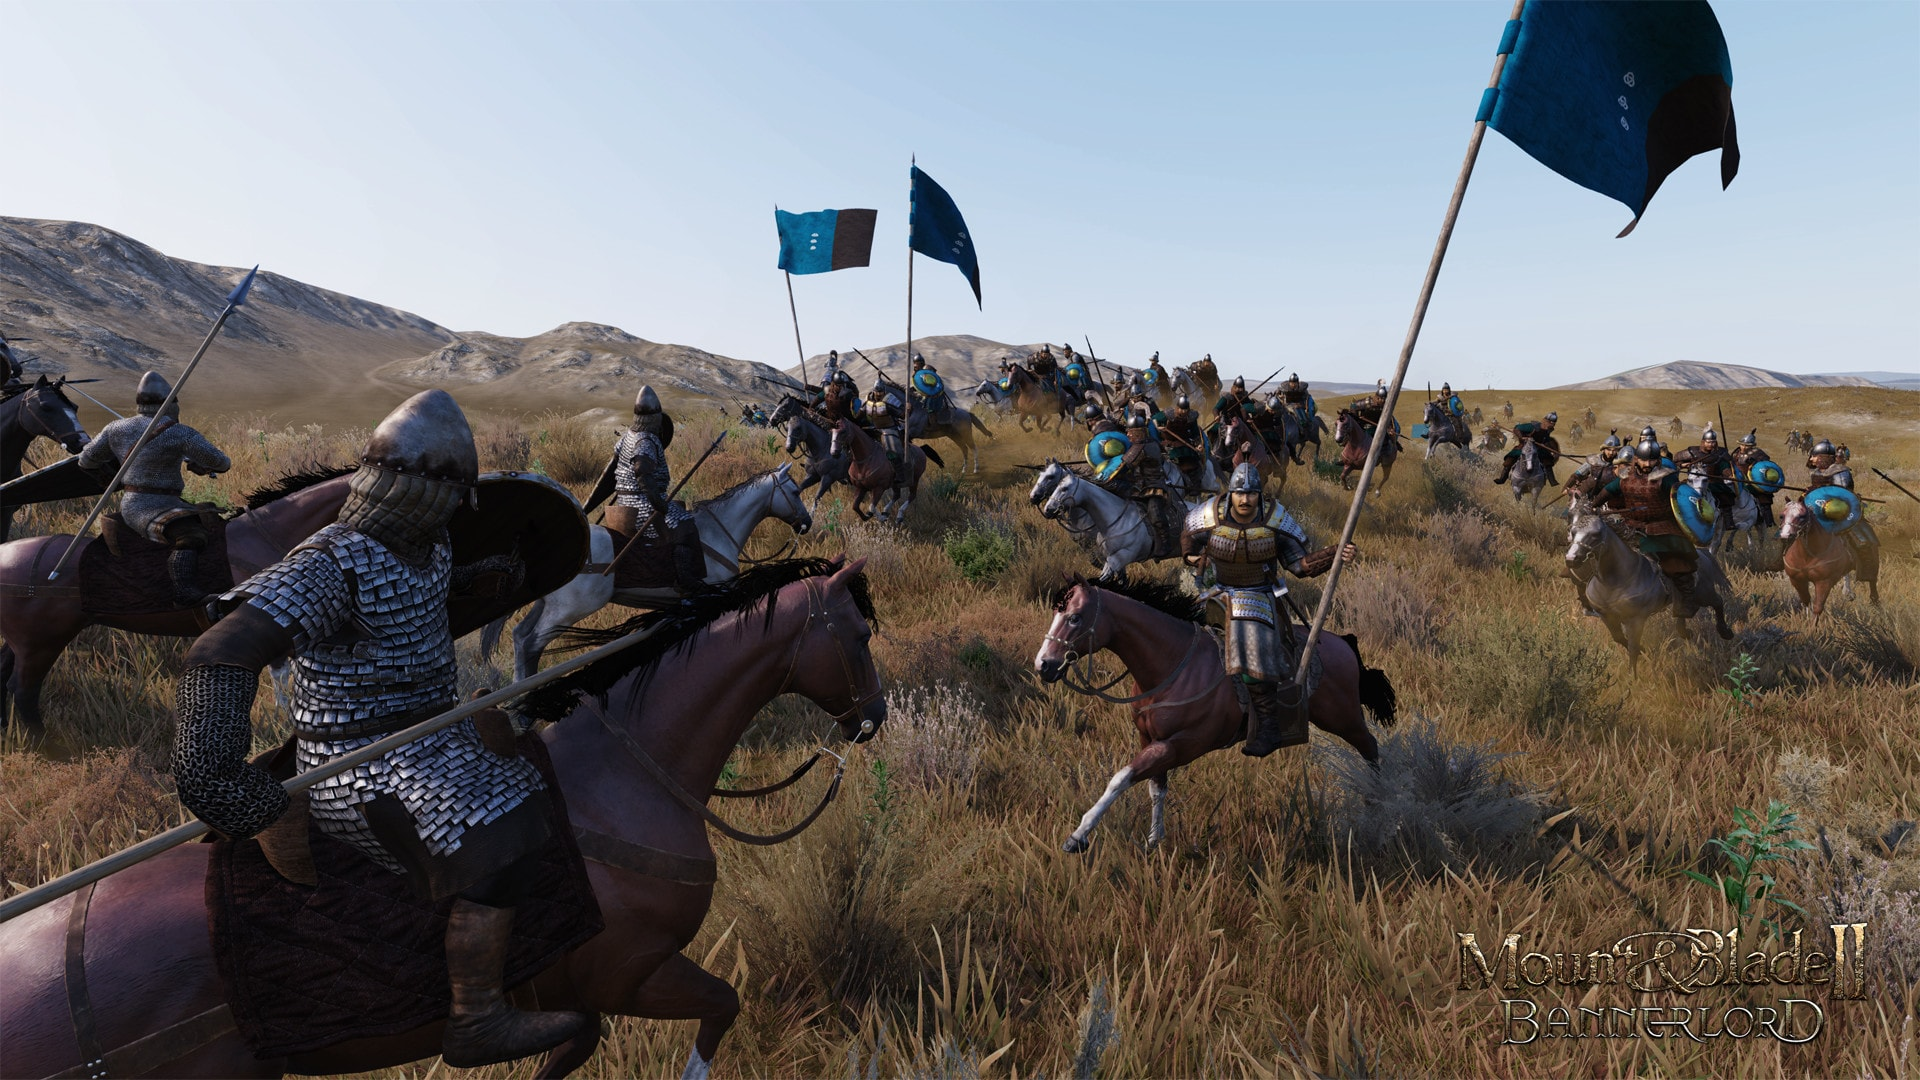 Mount & Blade II: Bannerlord (PC) - Steam Gift - EUROPE - 4